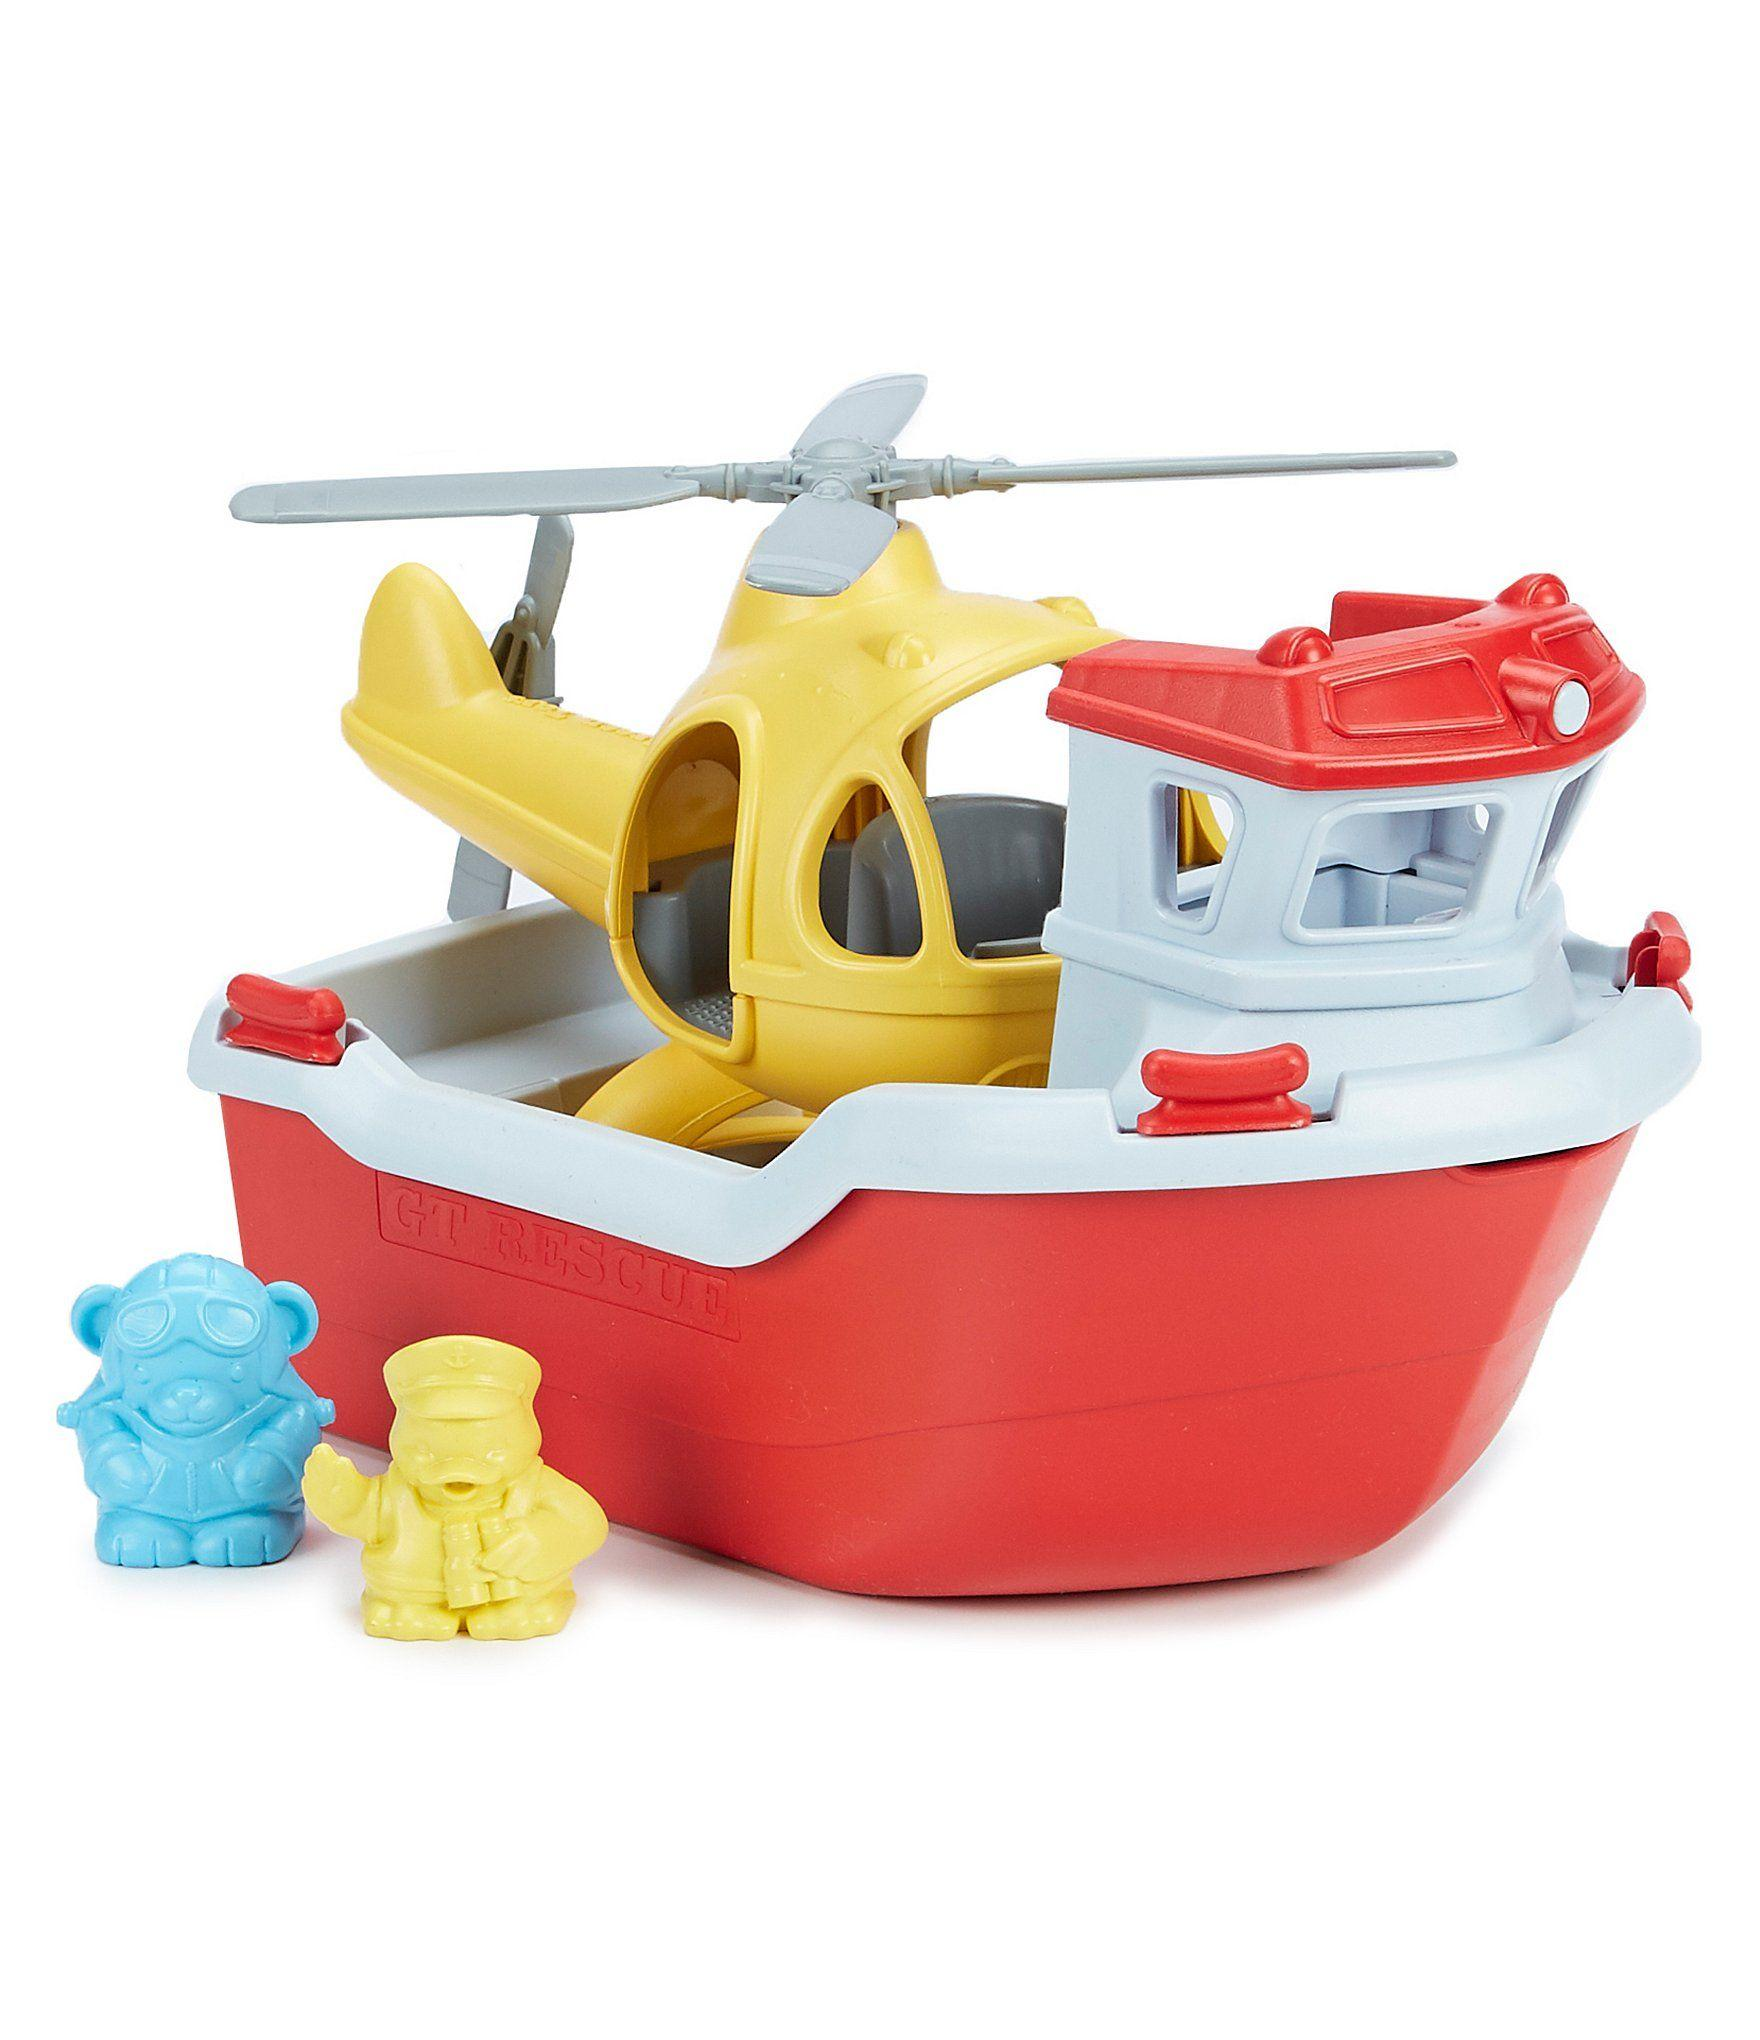 Green Toys Rescue Boat carrying a yellow helicopter.